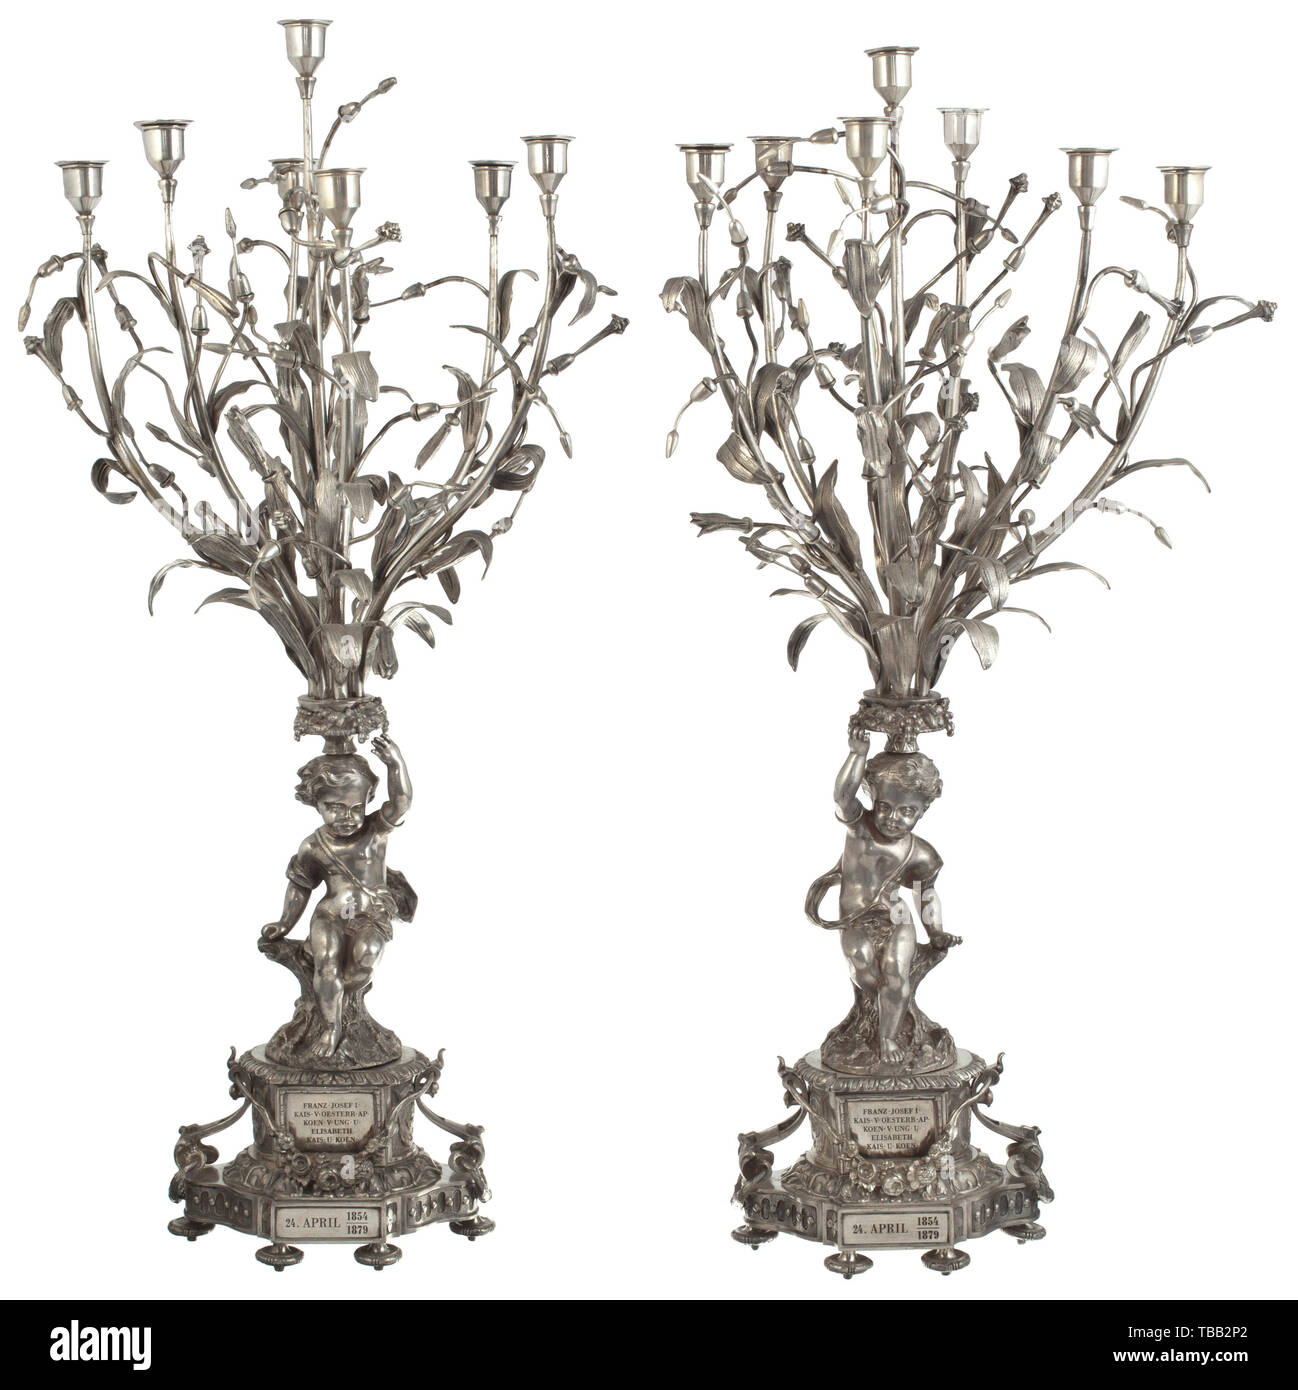 Emperor Franz Joseph I - Empress Elisabeth - a pair of candelabra in the form of magnolias A gift for the silver wedding anniversary of the imperial couple 1879. Fire-silvered brass. Extraordinarily crafted pieces, the seven-branched magnolia candelabra (the leaves pie 19th century, Additional-Rights-Clearance-Info-Not-Available - Stock Image